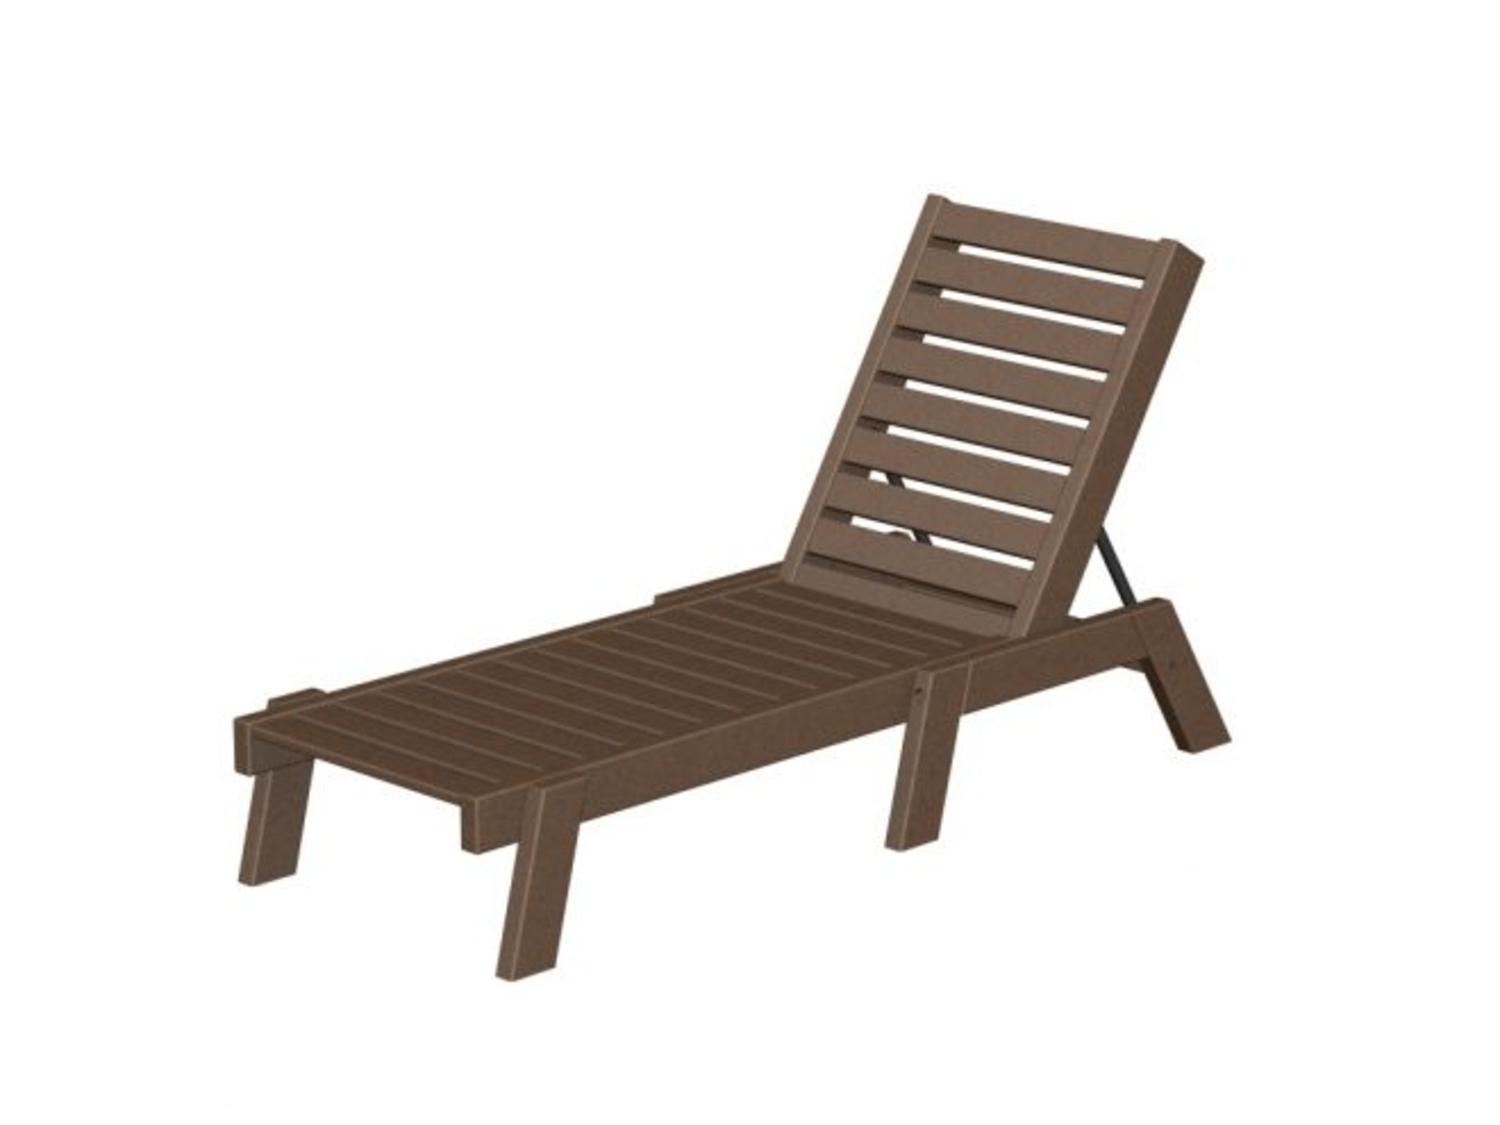 Recycled Oceanic Outdoor Armless Chaise Lounge Chair